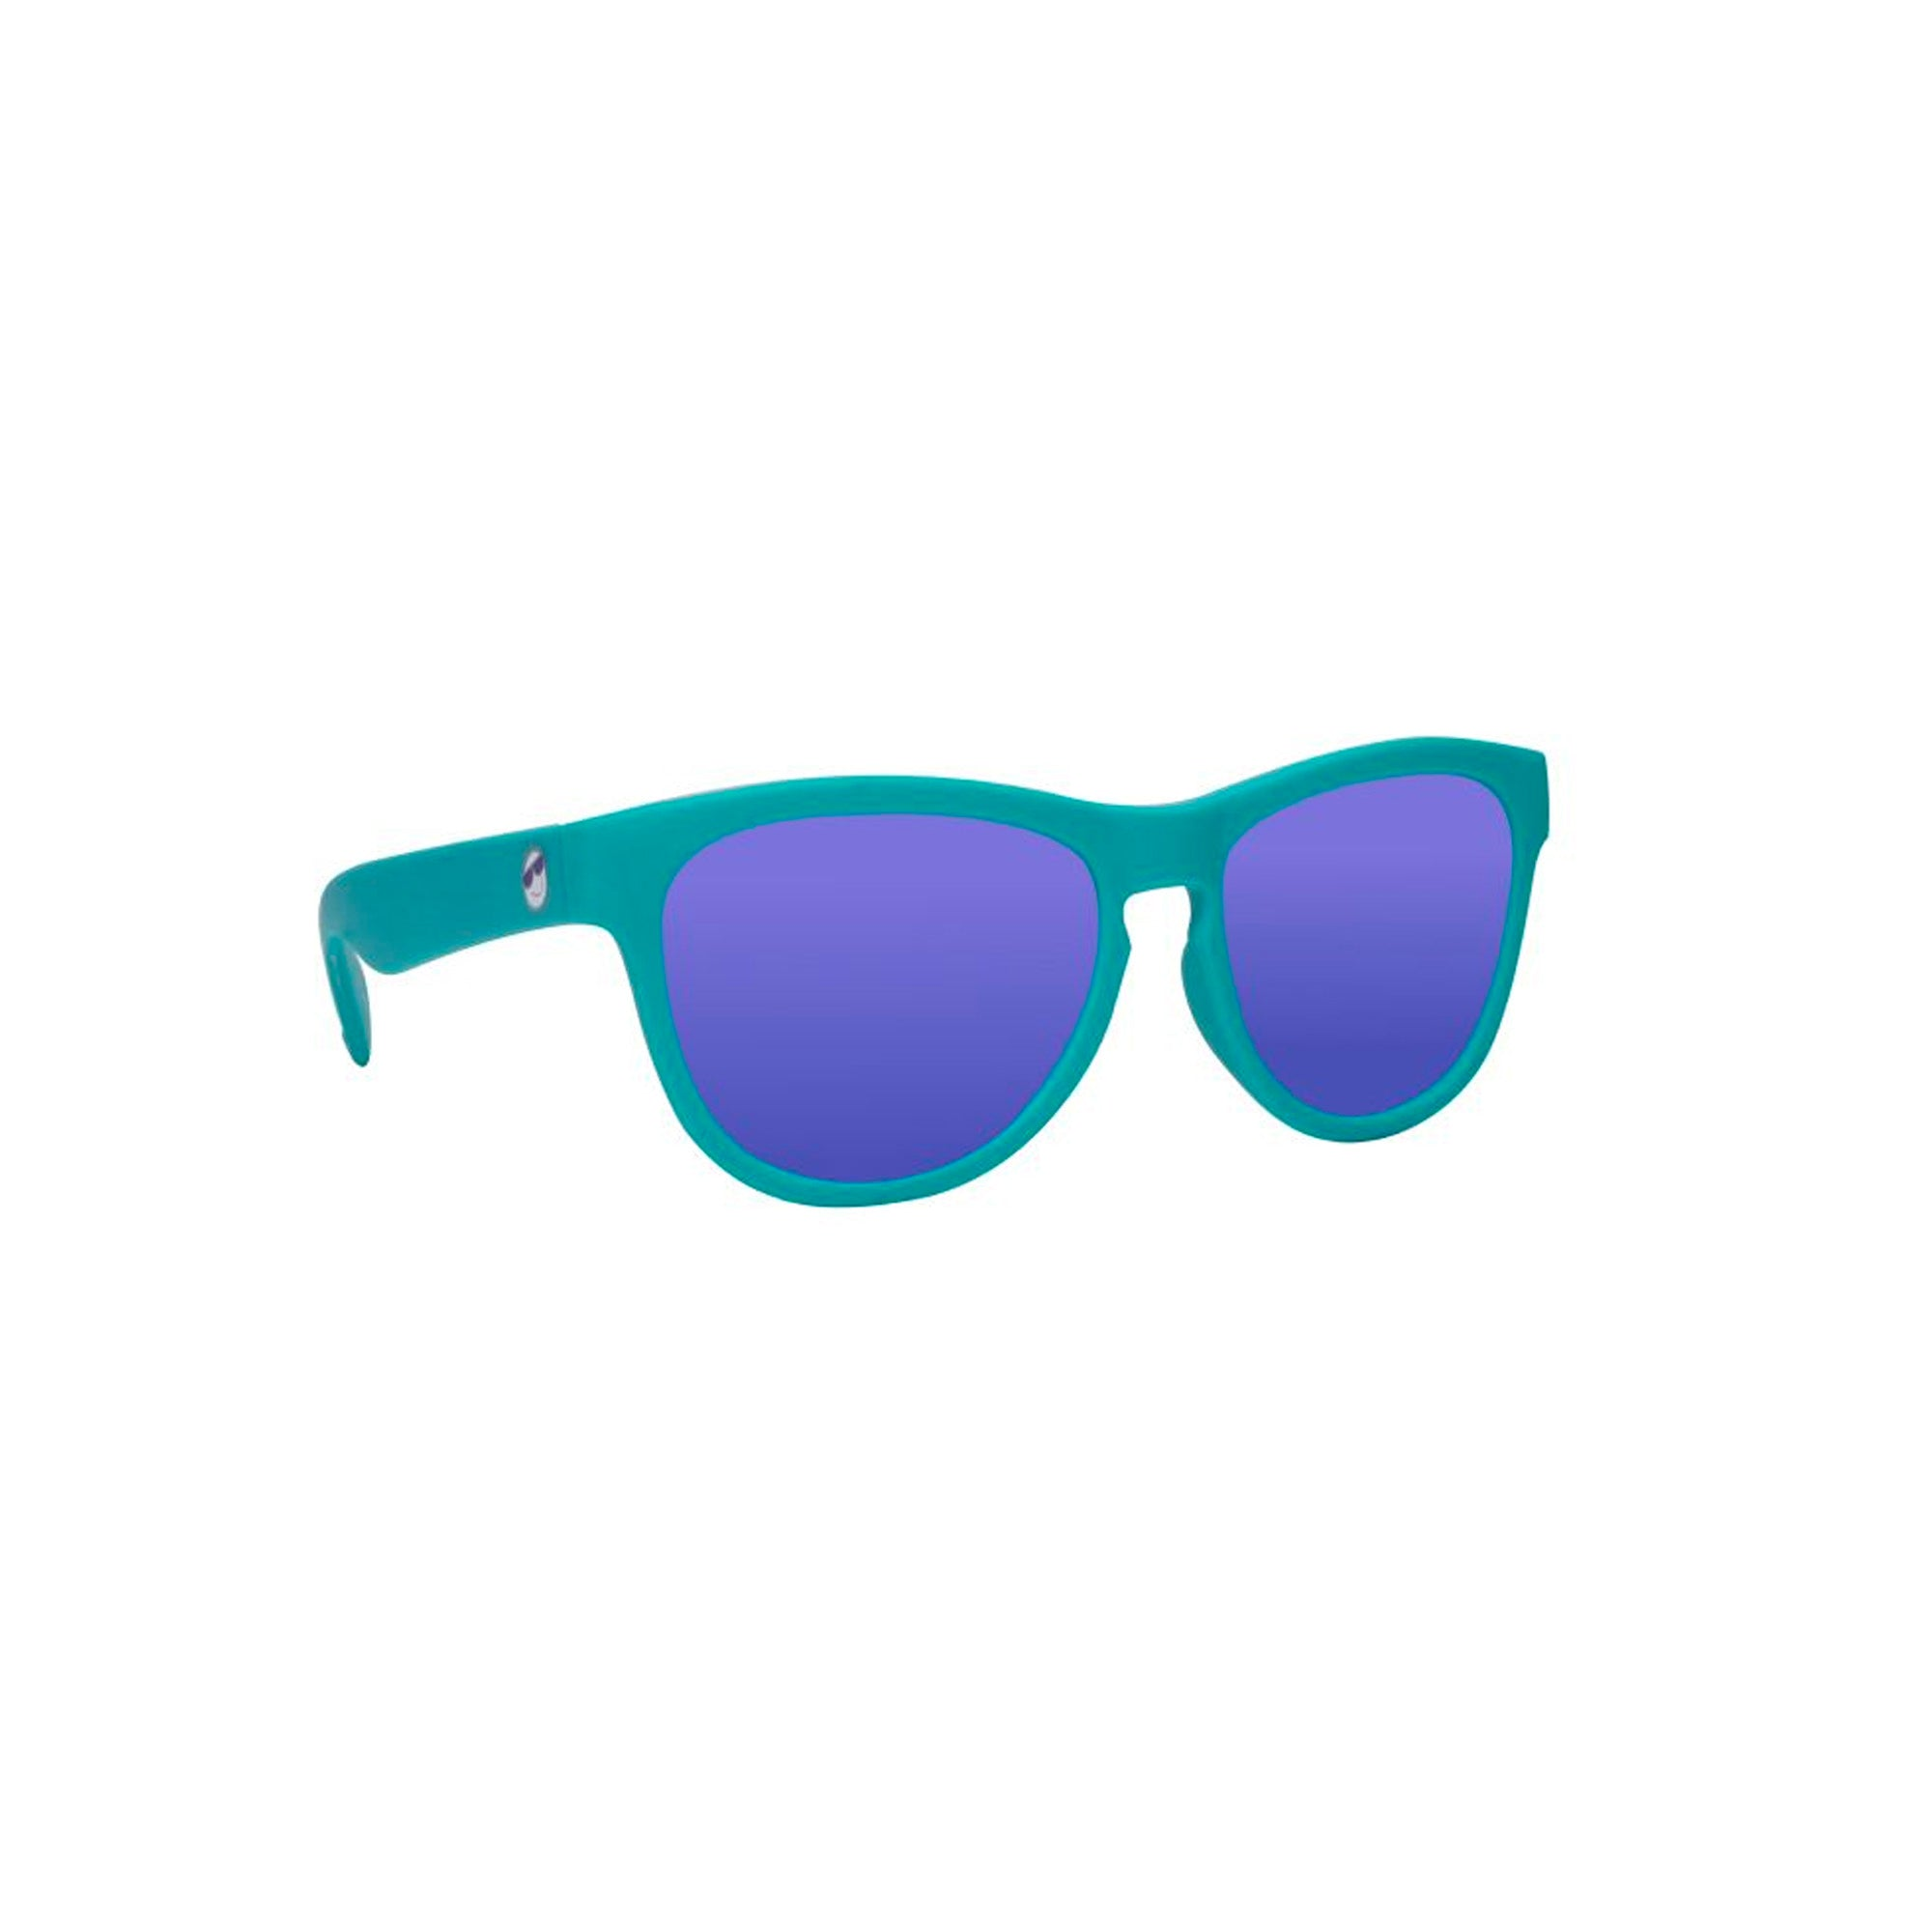 Mini Shades Classic Kid's Polarized Sunglasses (Ages 8-12+) - Totally Teal